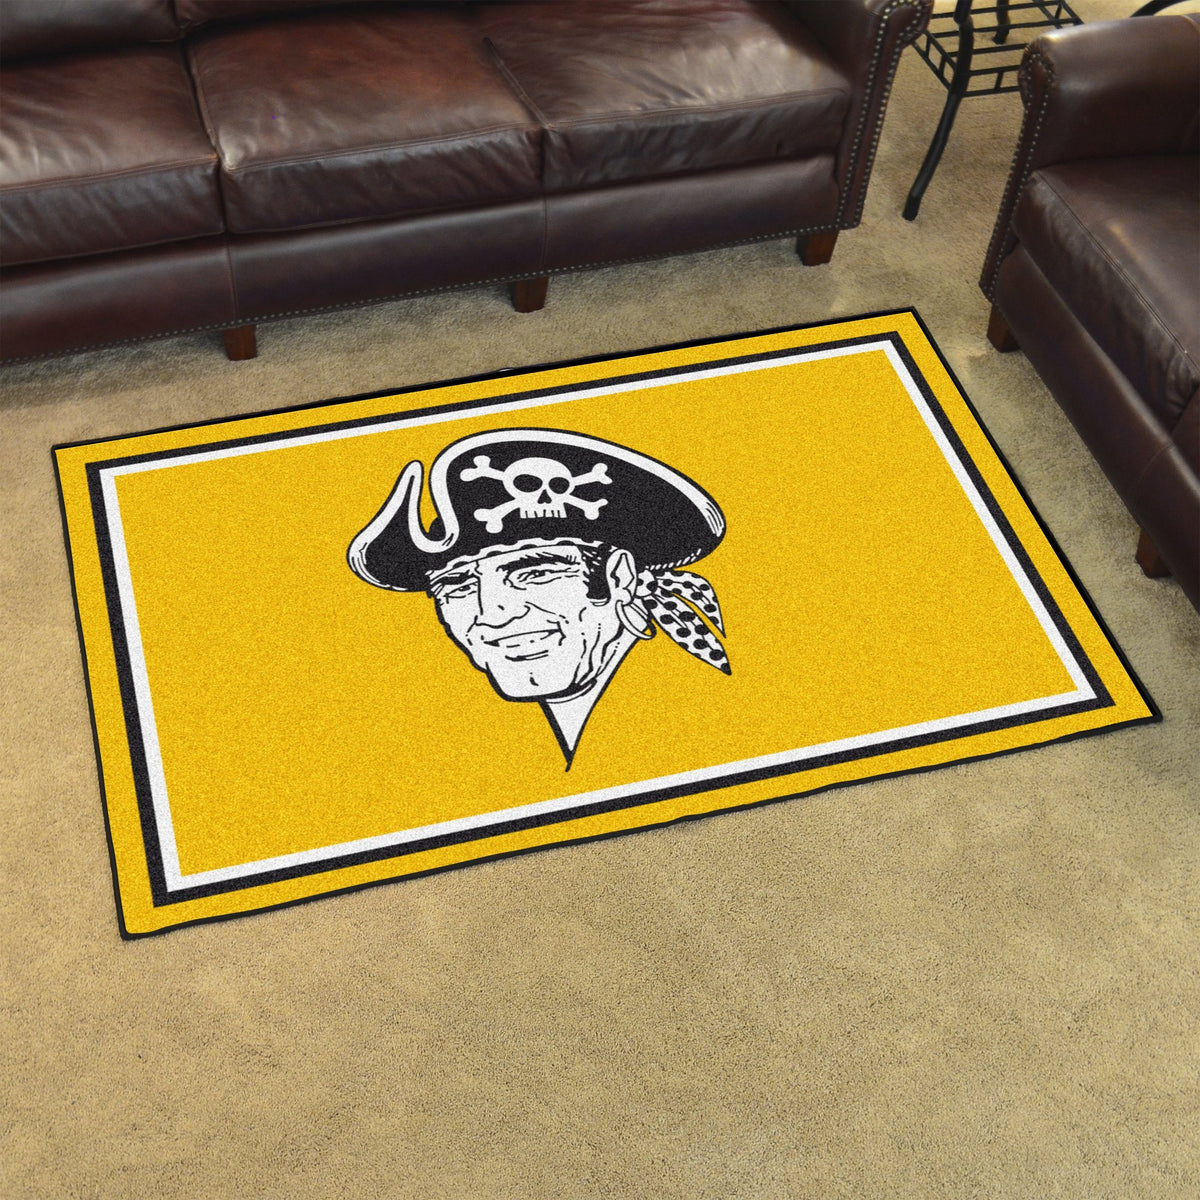 MLB Retro - 4' x 6' Rug MLB Retro Mats, Plush Rugs, 4x6 Rug, MLB, Home Fan Mats Pittsburgh Pirates